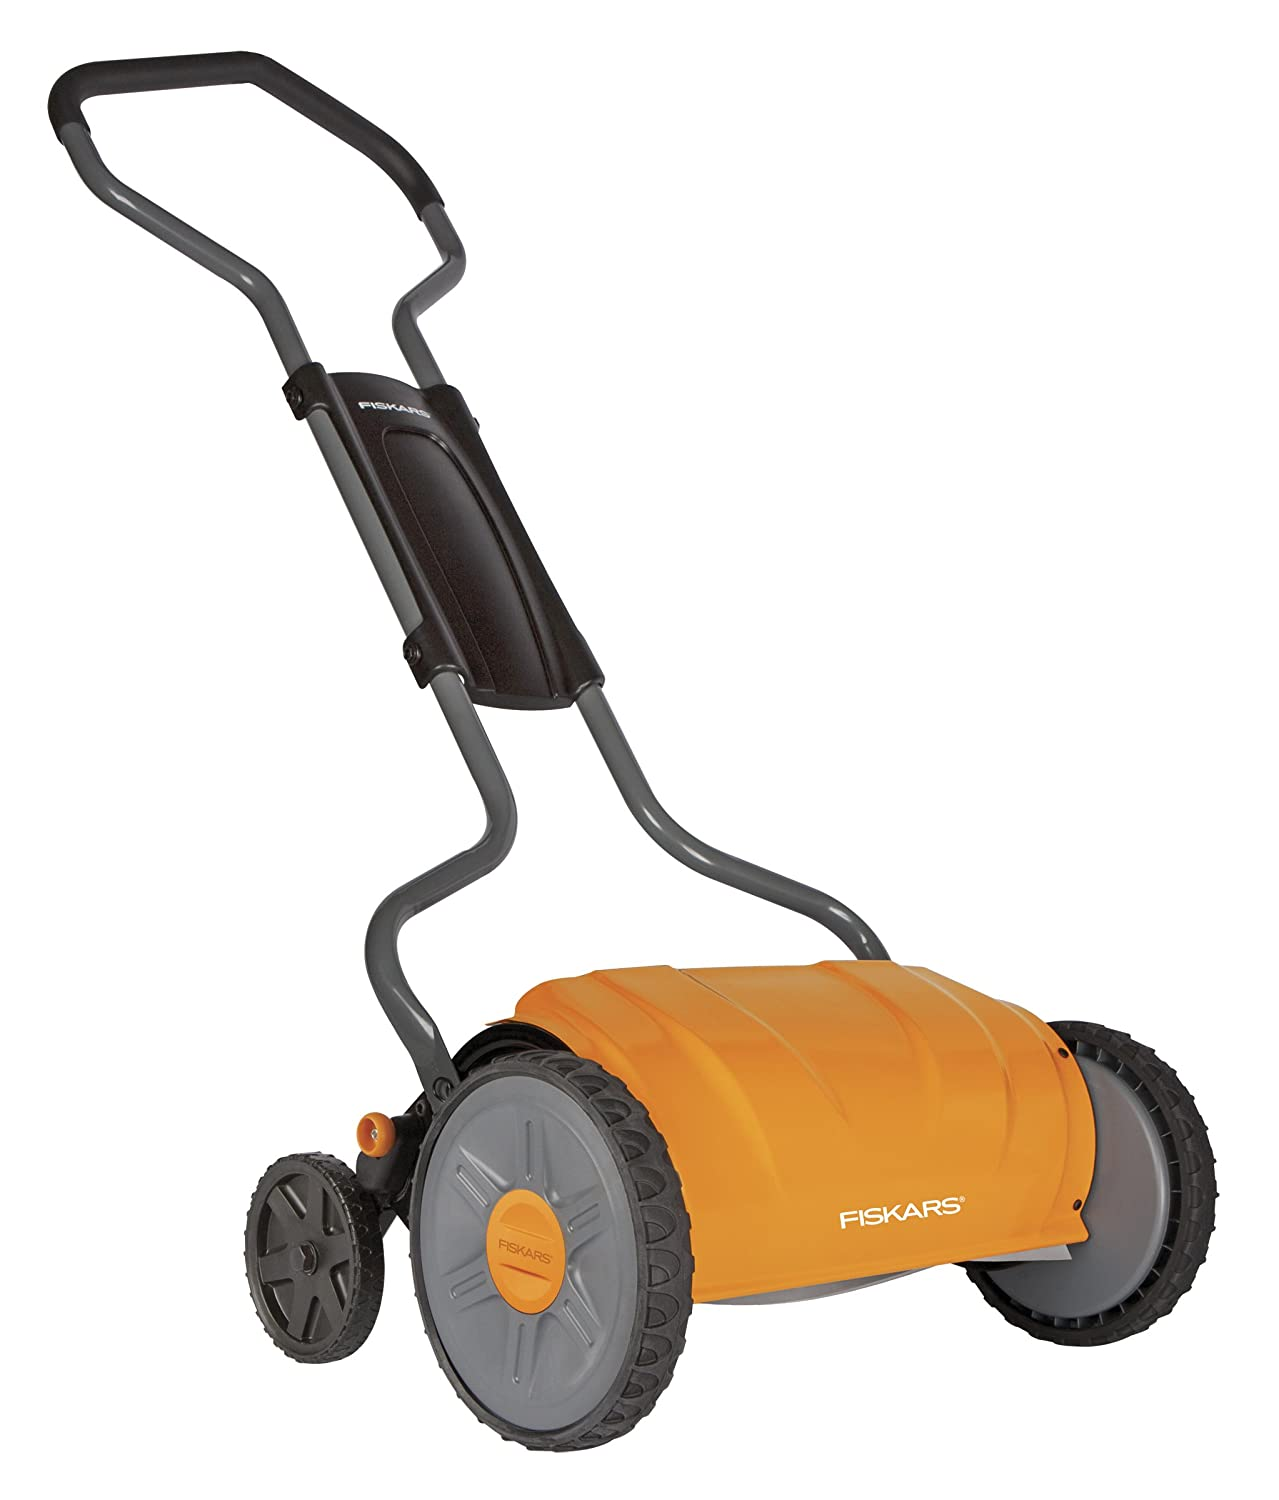 Fiskars 17 Inch Staysharp Push Reel Lawn Mower 6208